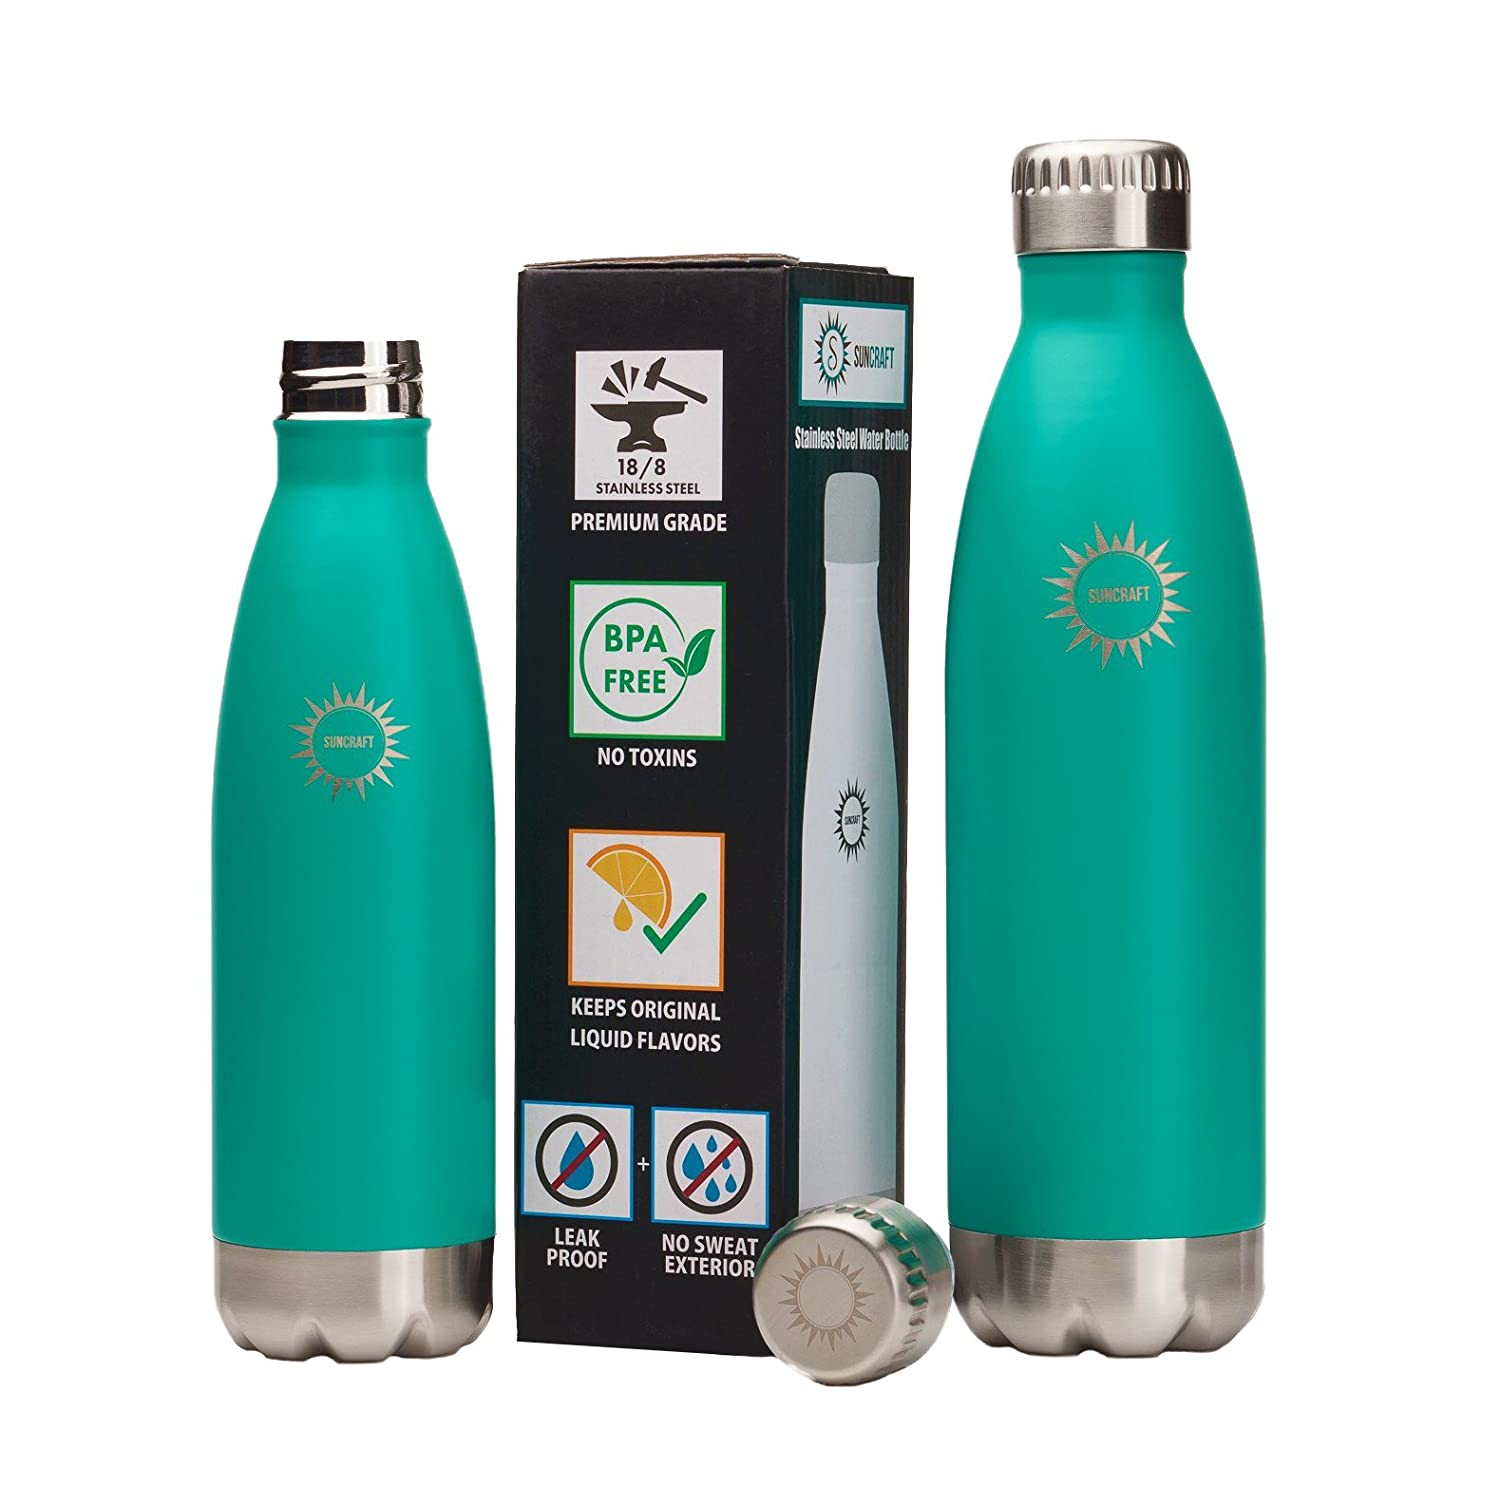 Amazon.com: Stainless Steel Vacuum Insulated Water Bottle, BPA Free ...